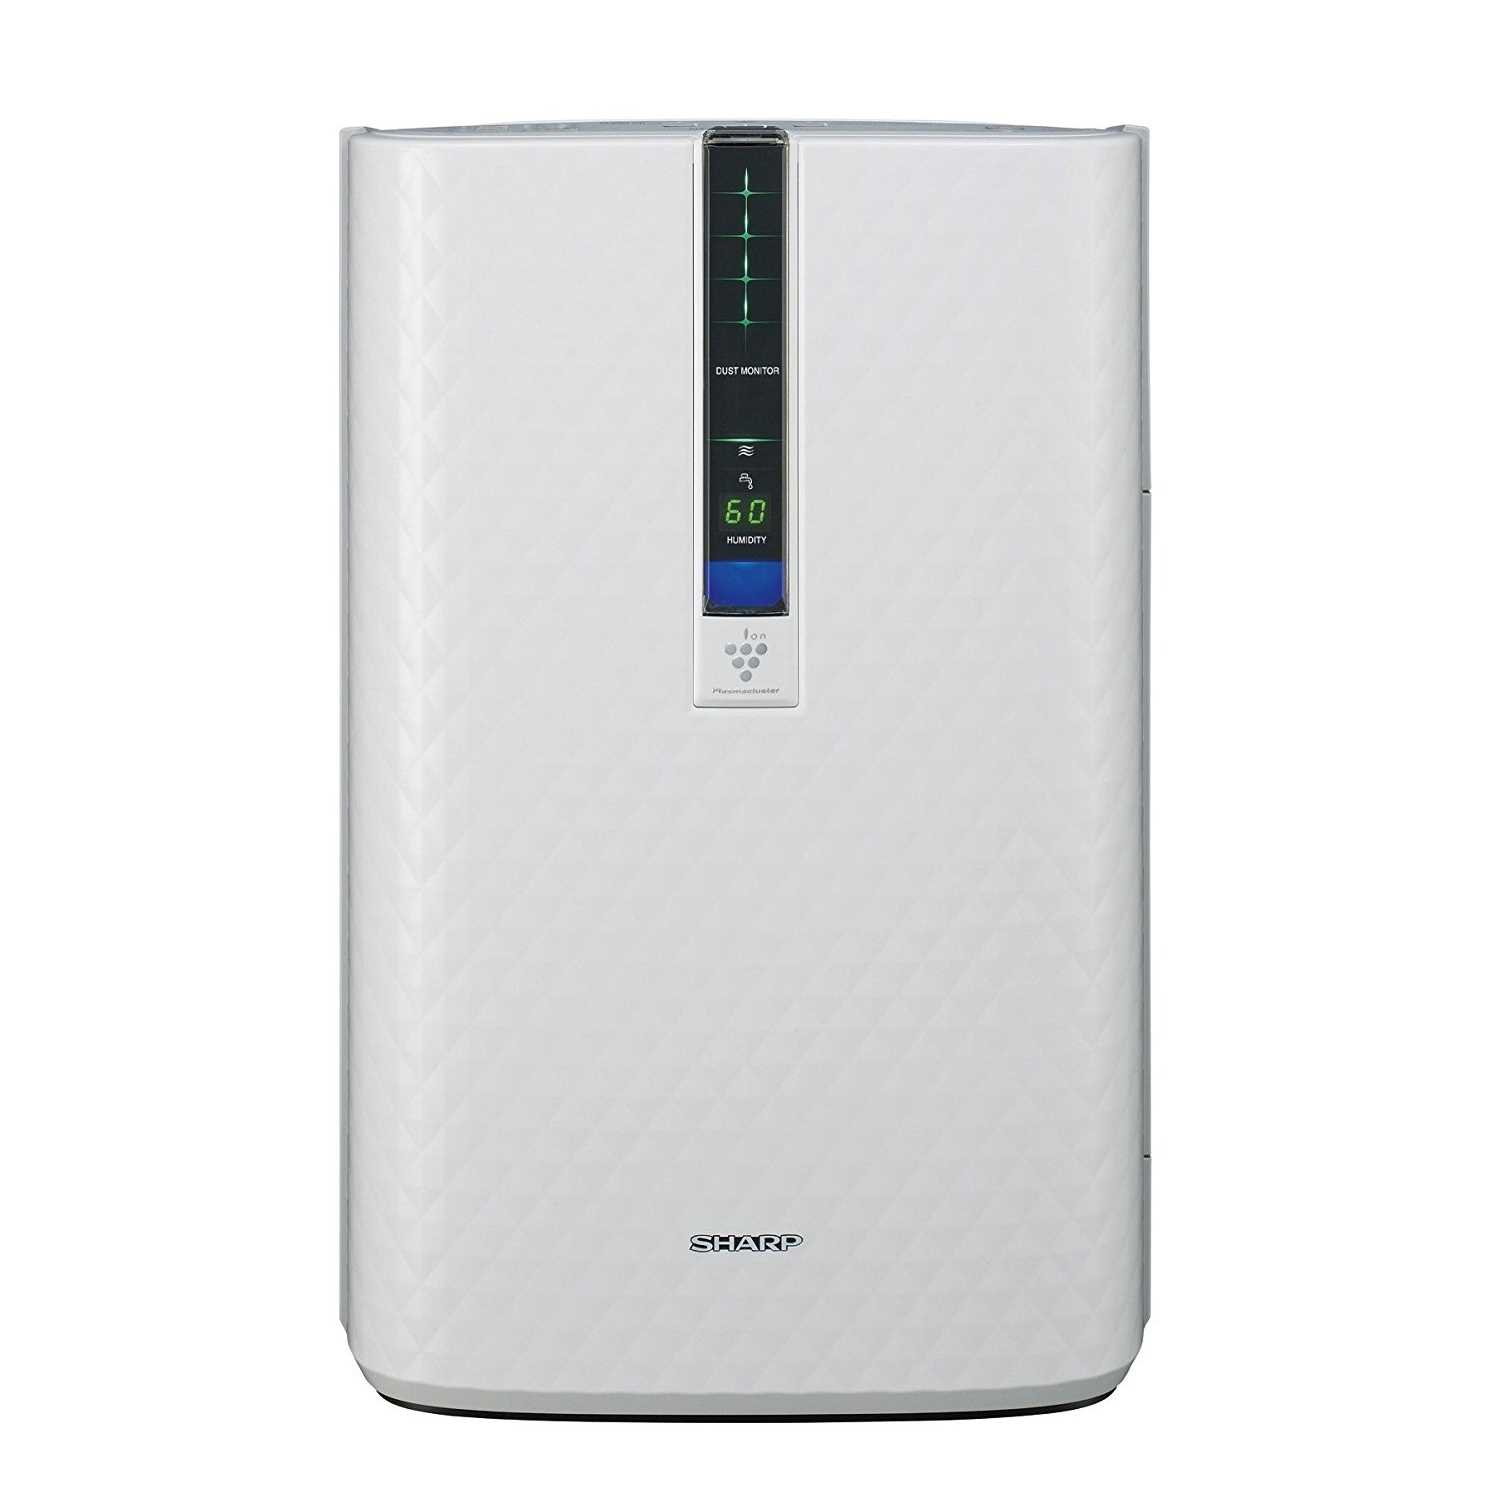 Sharp KC-850U Room Air Purifier